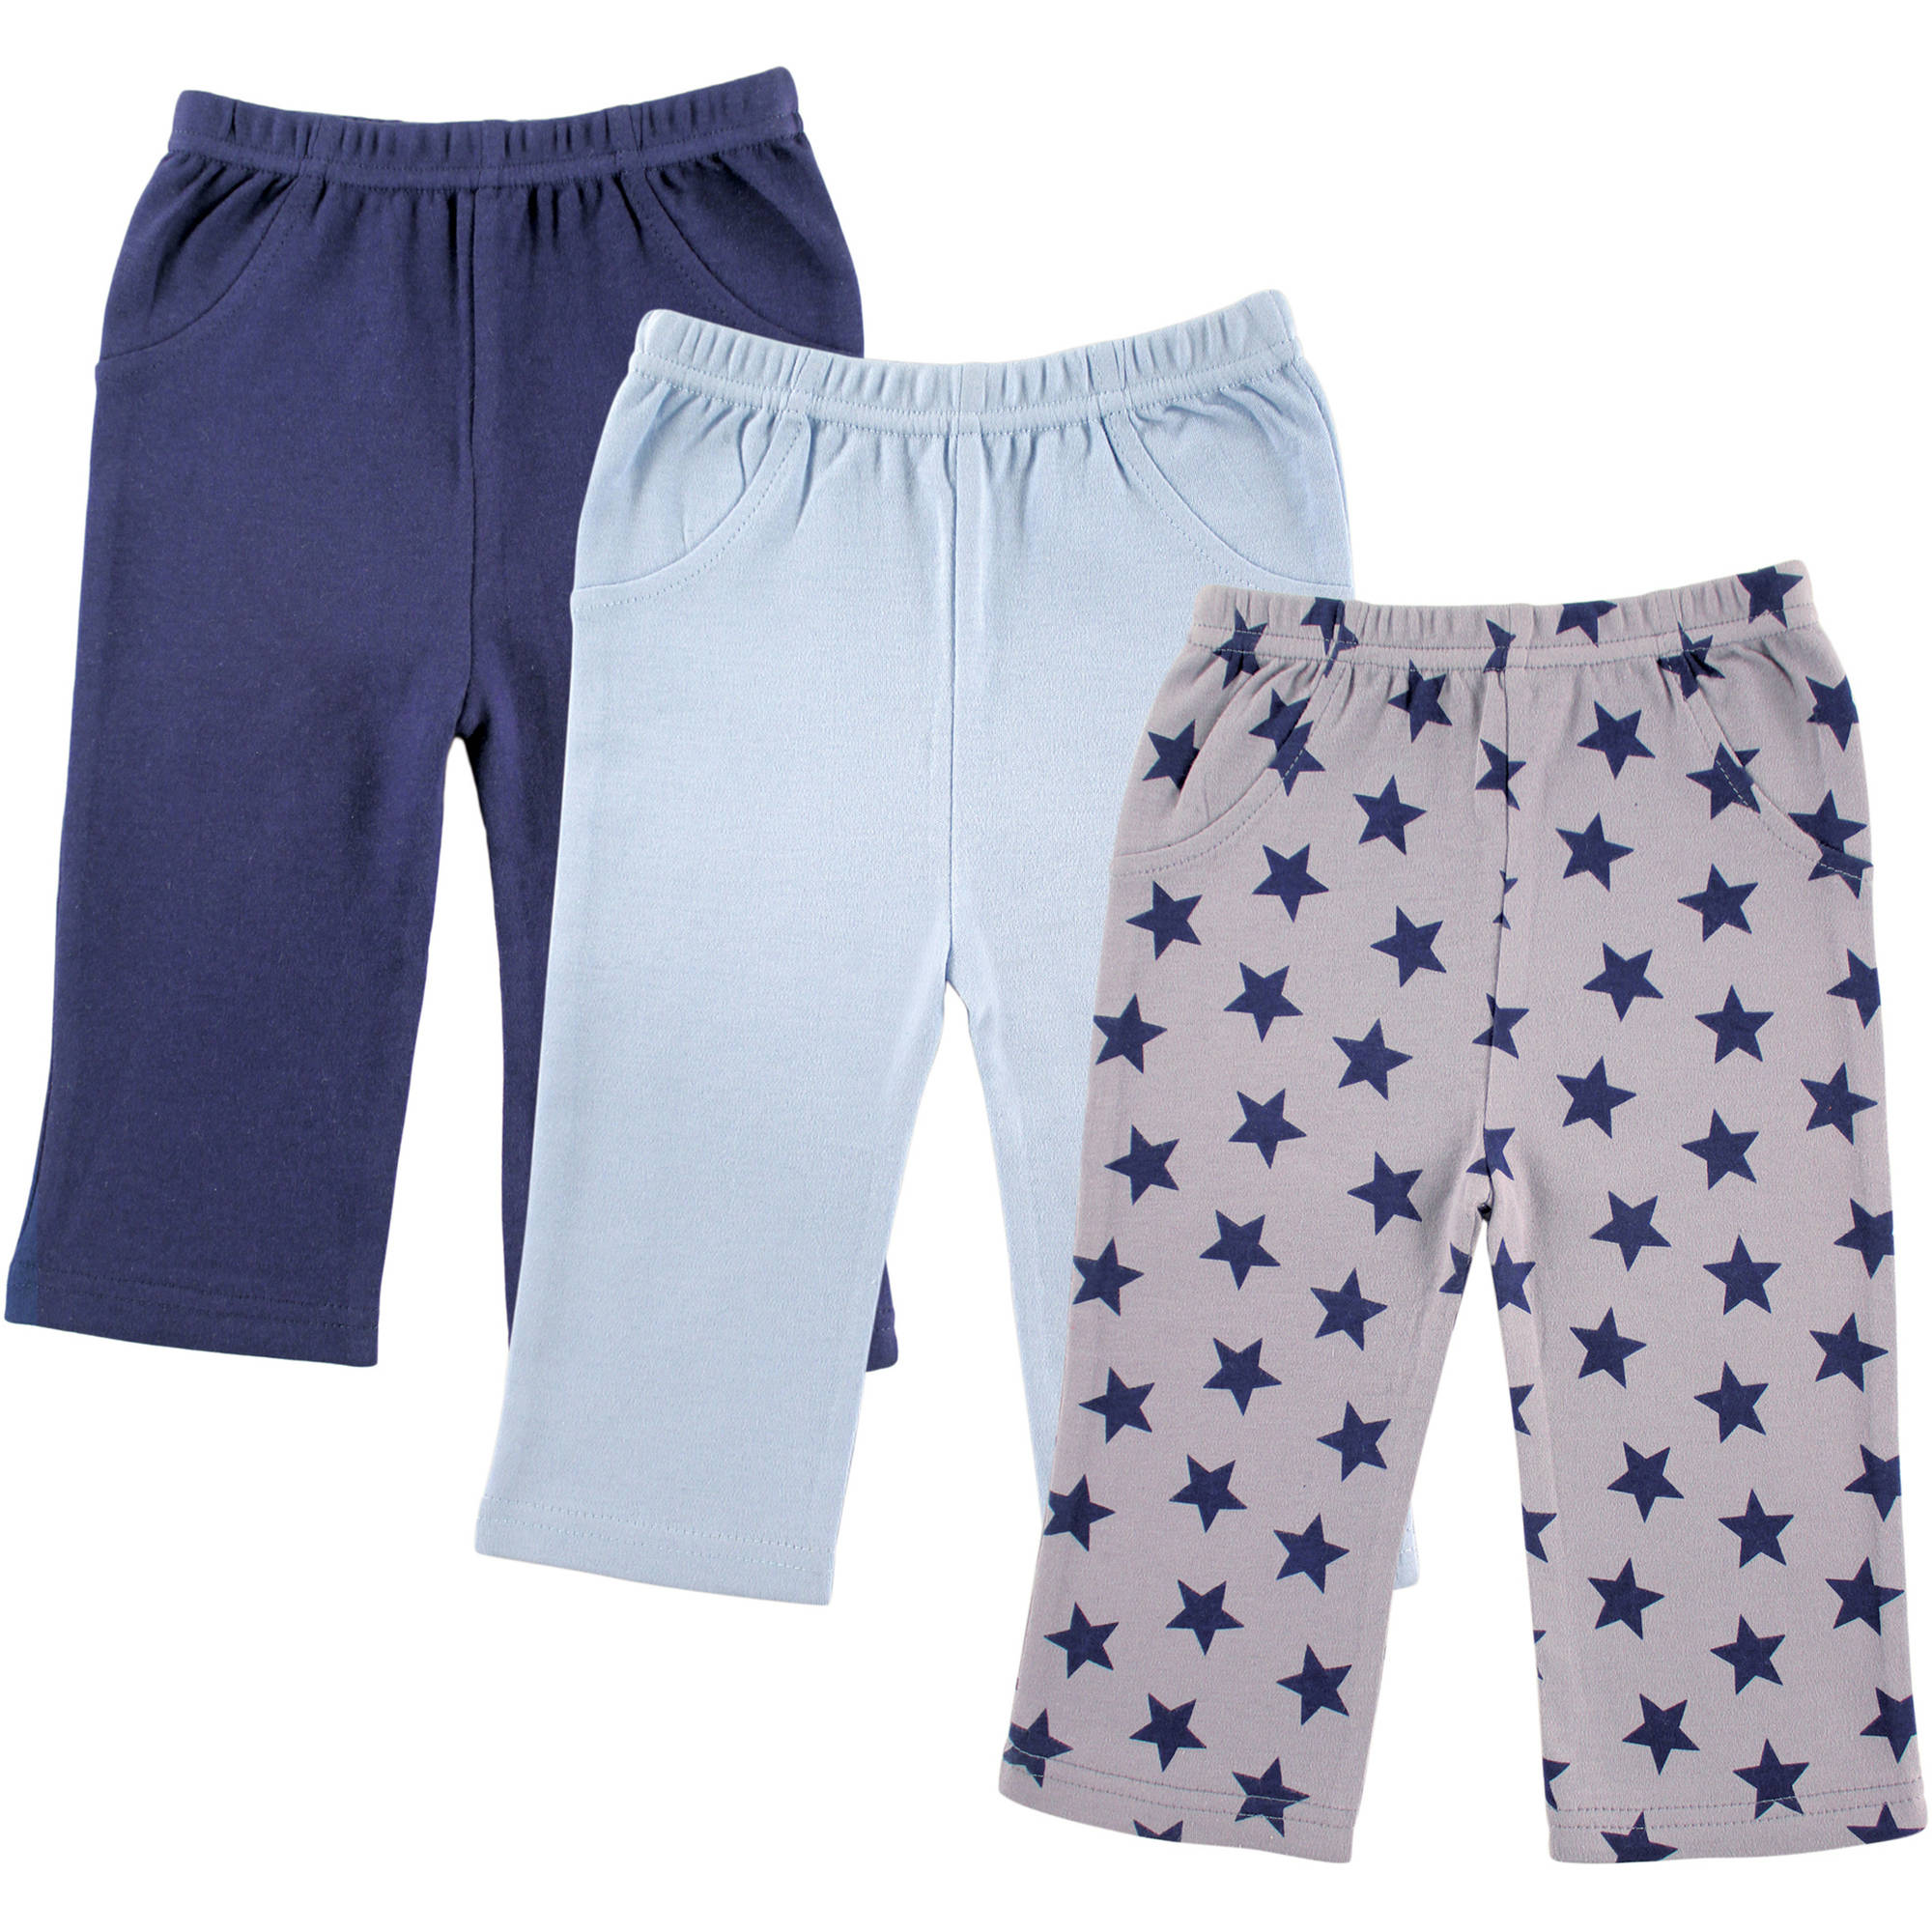 Luvable Friends Newborn Baby Boy 3-Pack Printed Pants, Blue Stars